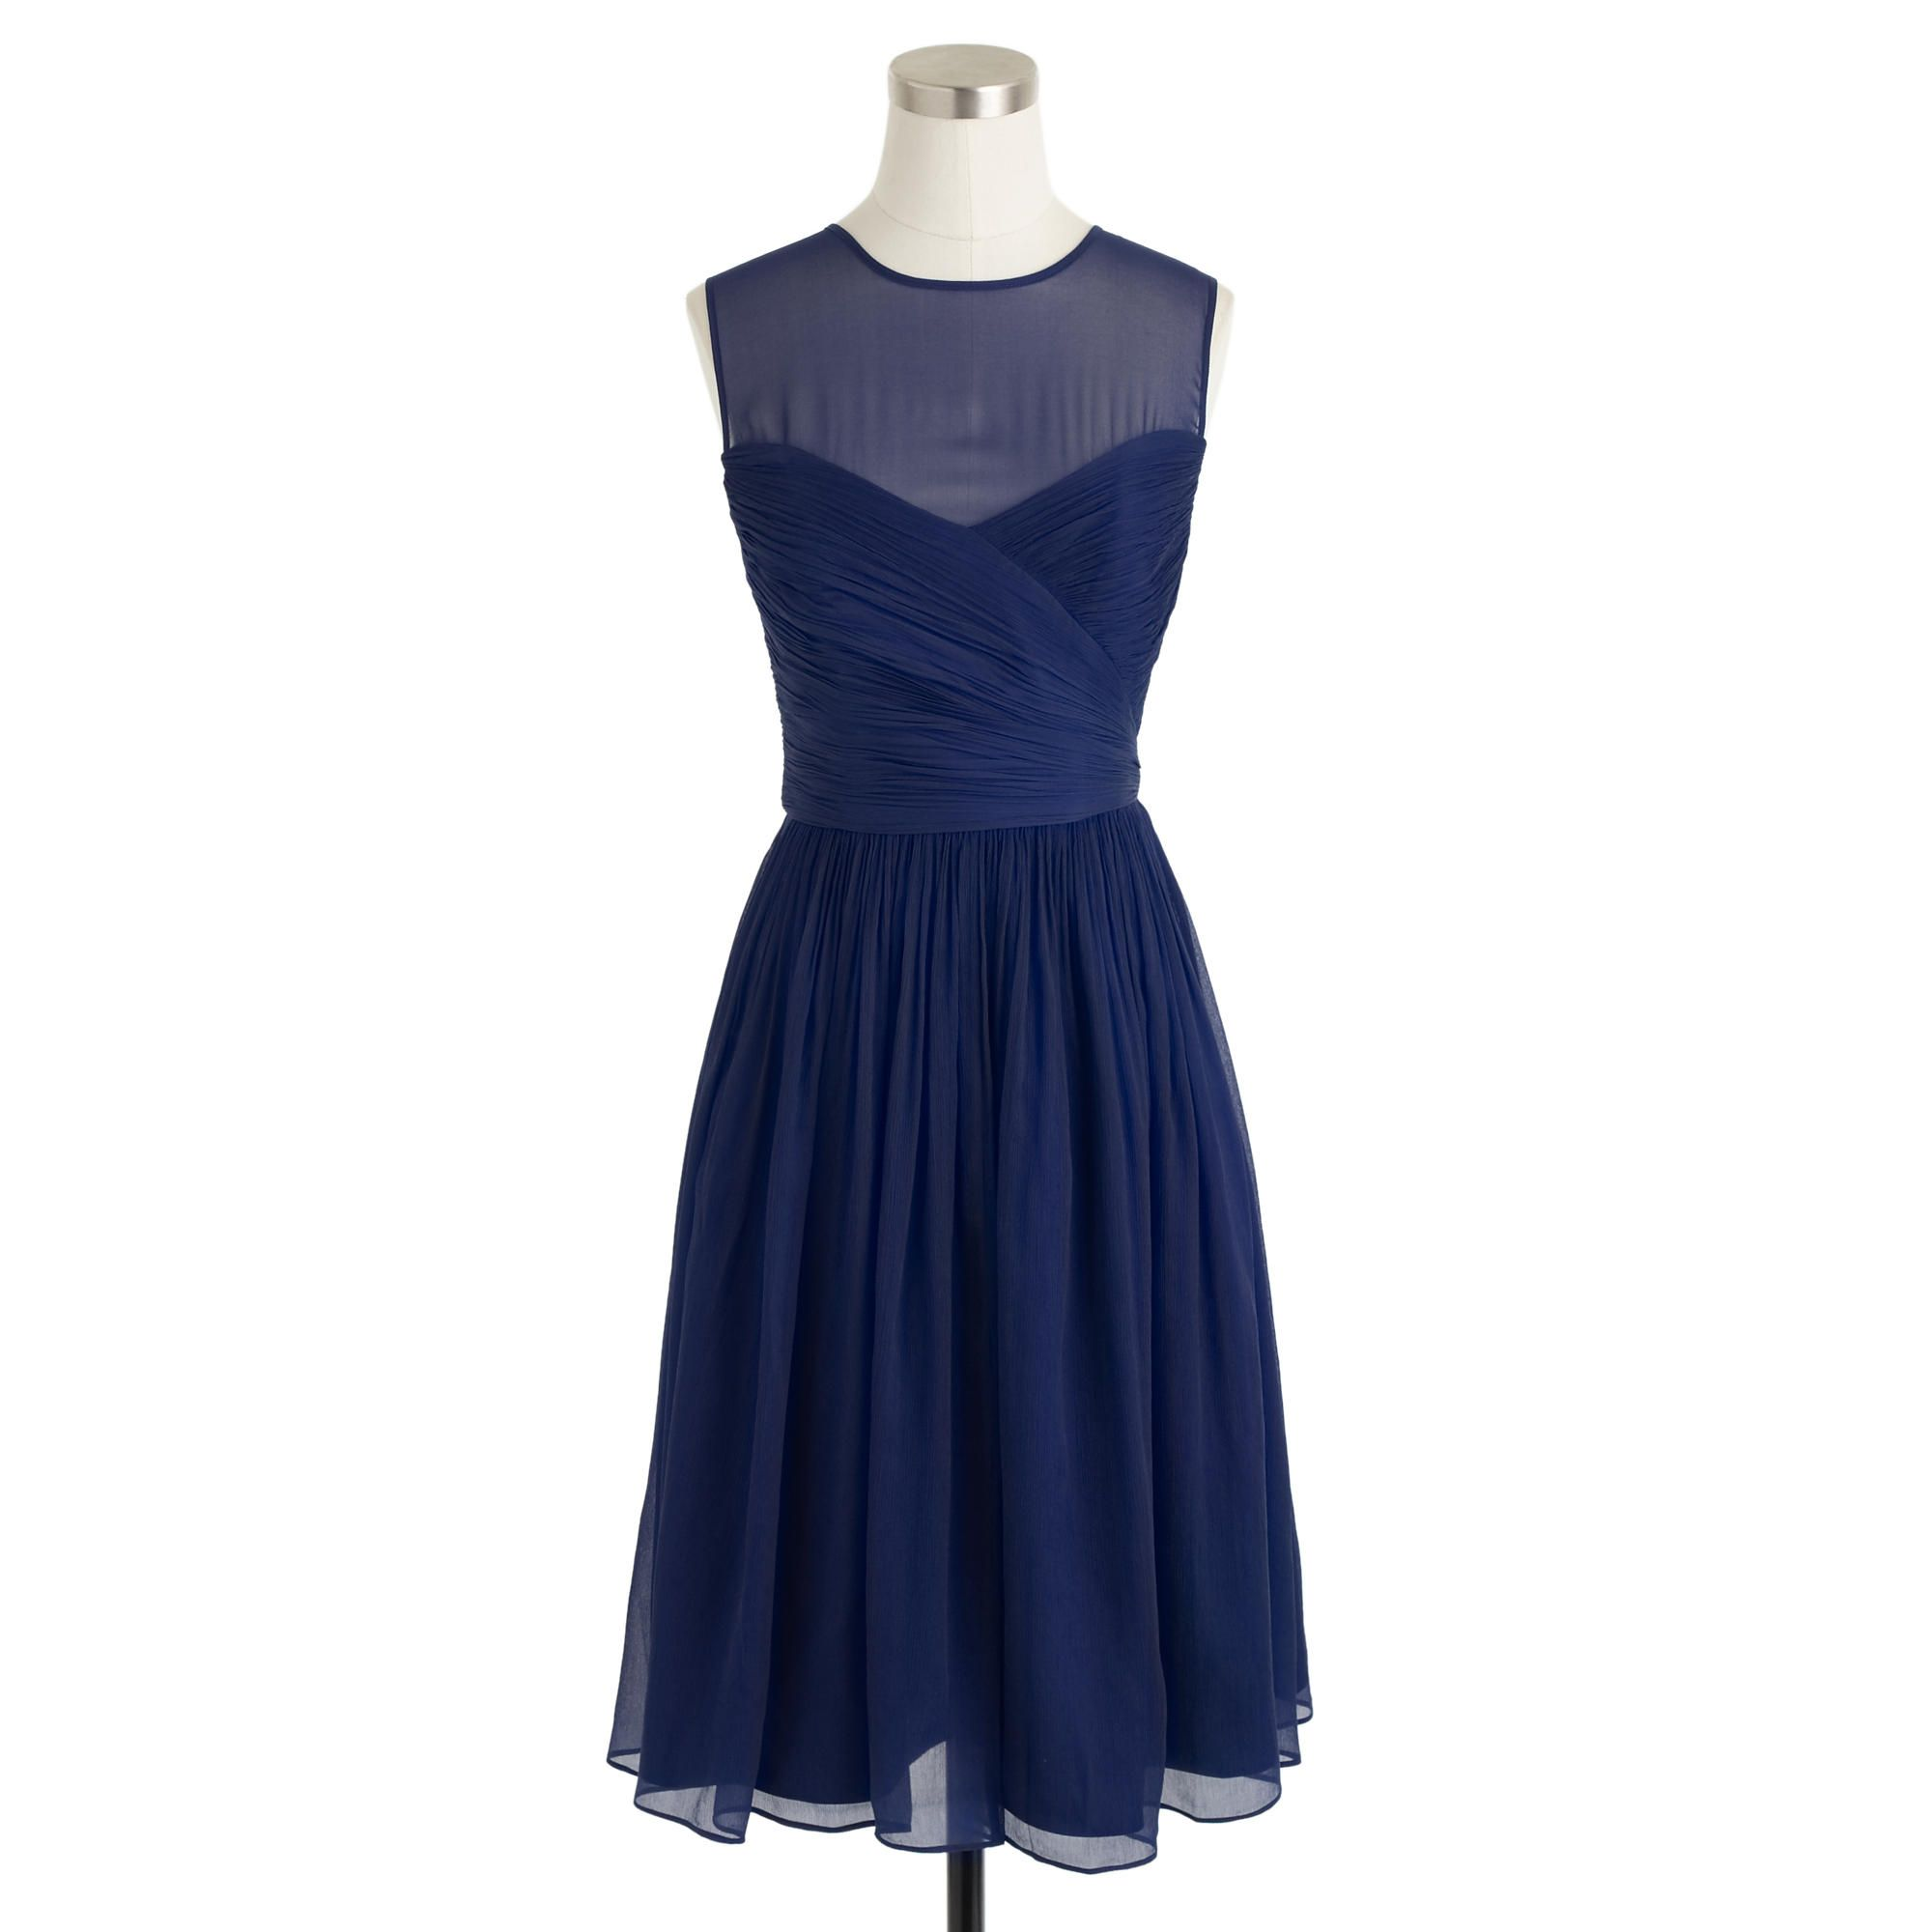 Adeles dress possibly jew clara dress in dark cove adeles dress possibly jew clara dress in dark cove wedding party ideas pinterest adele dress dress in and cove ombrellifo Gallery